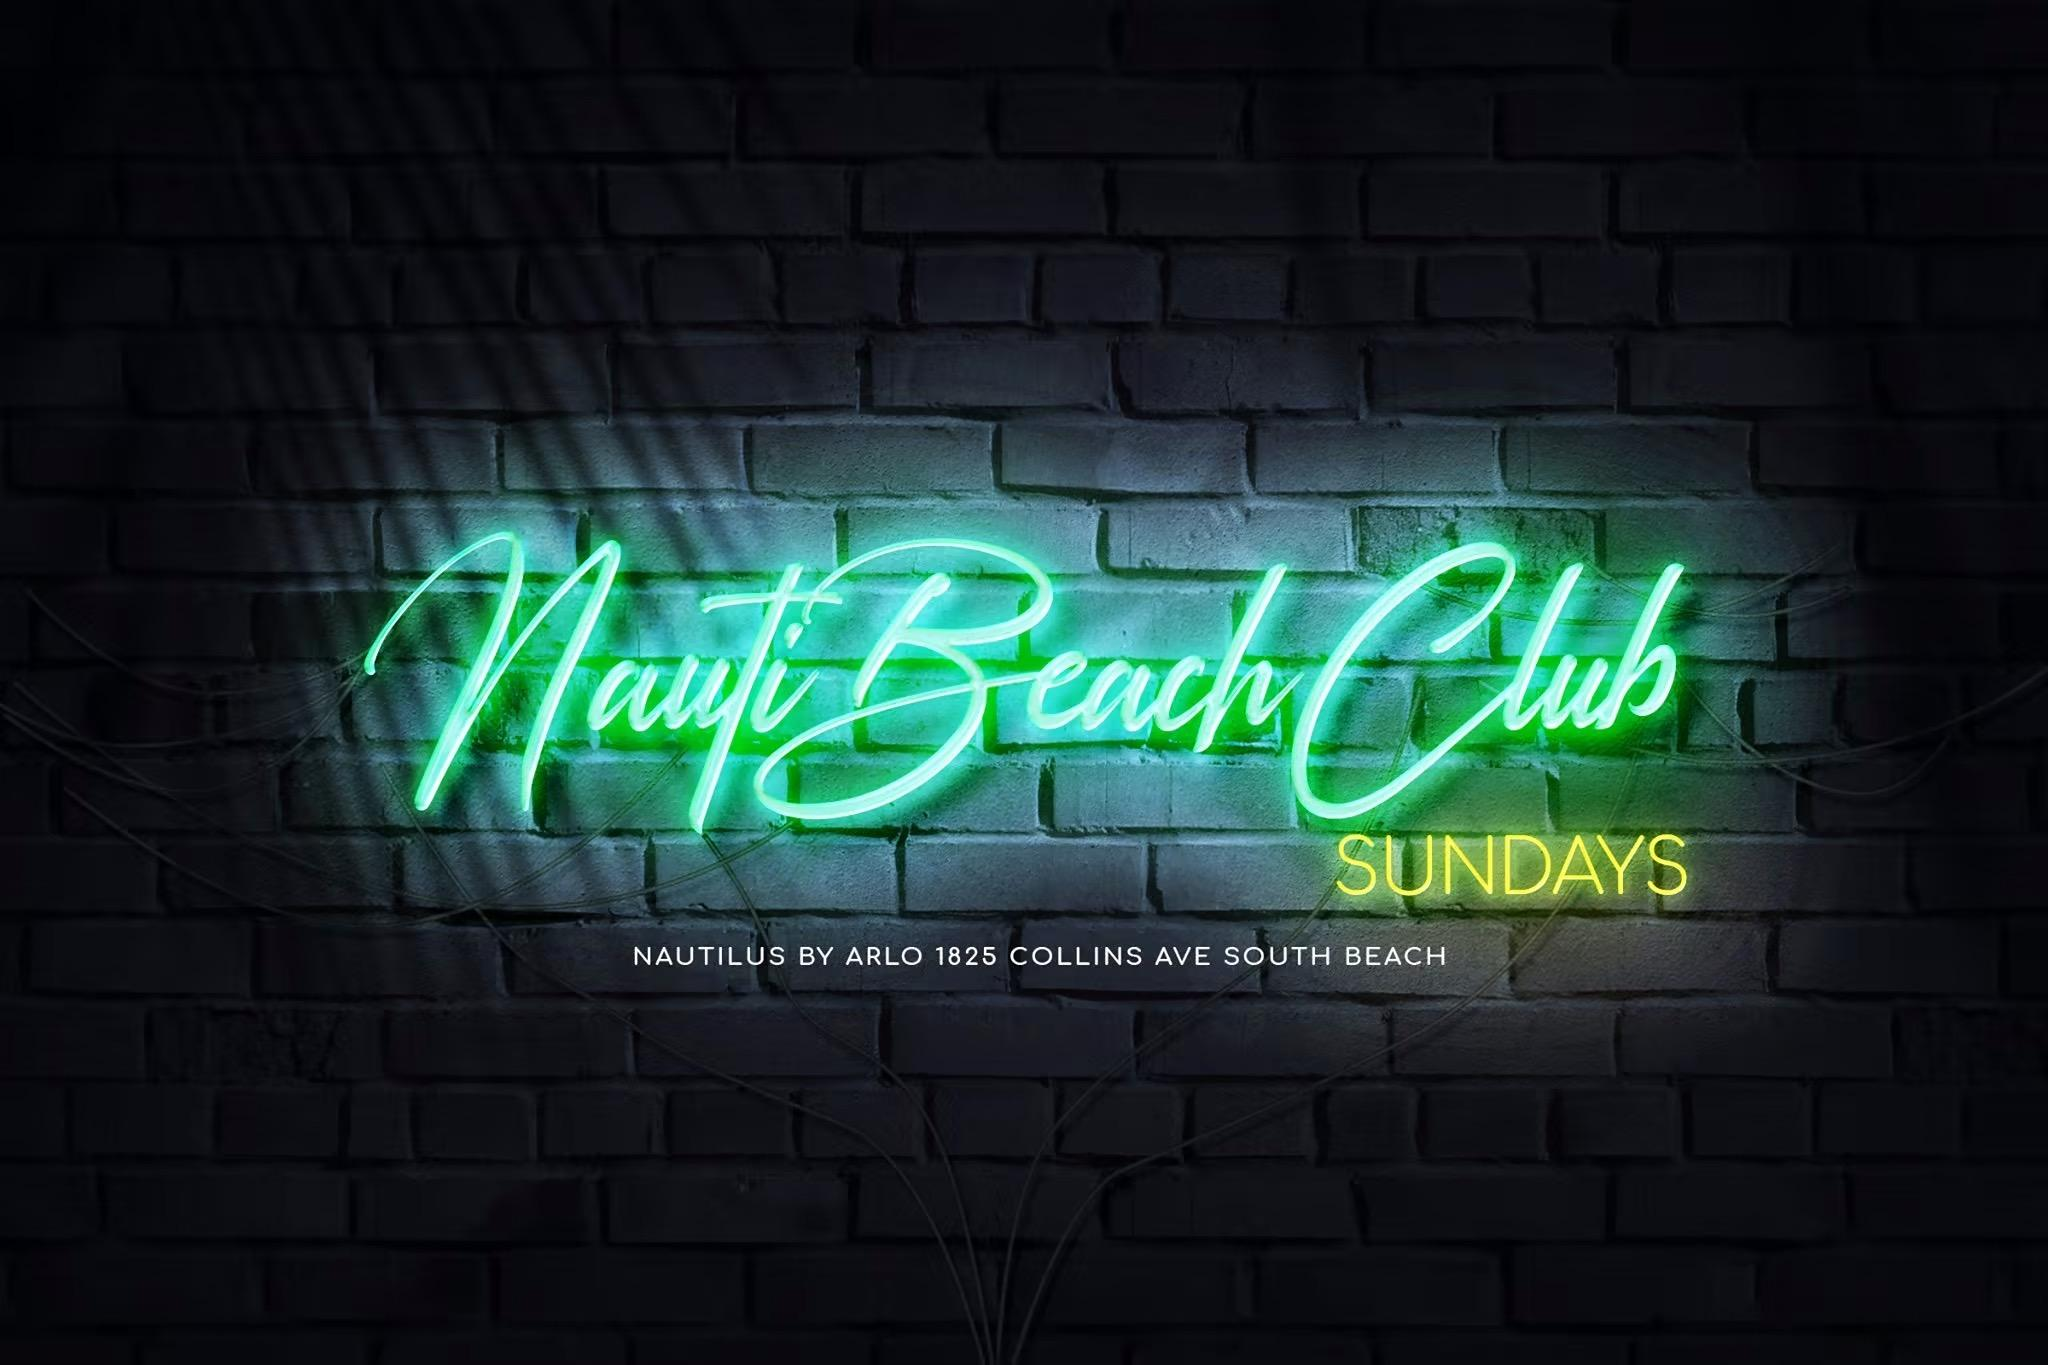 Nauti Beach Club Sundays